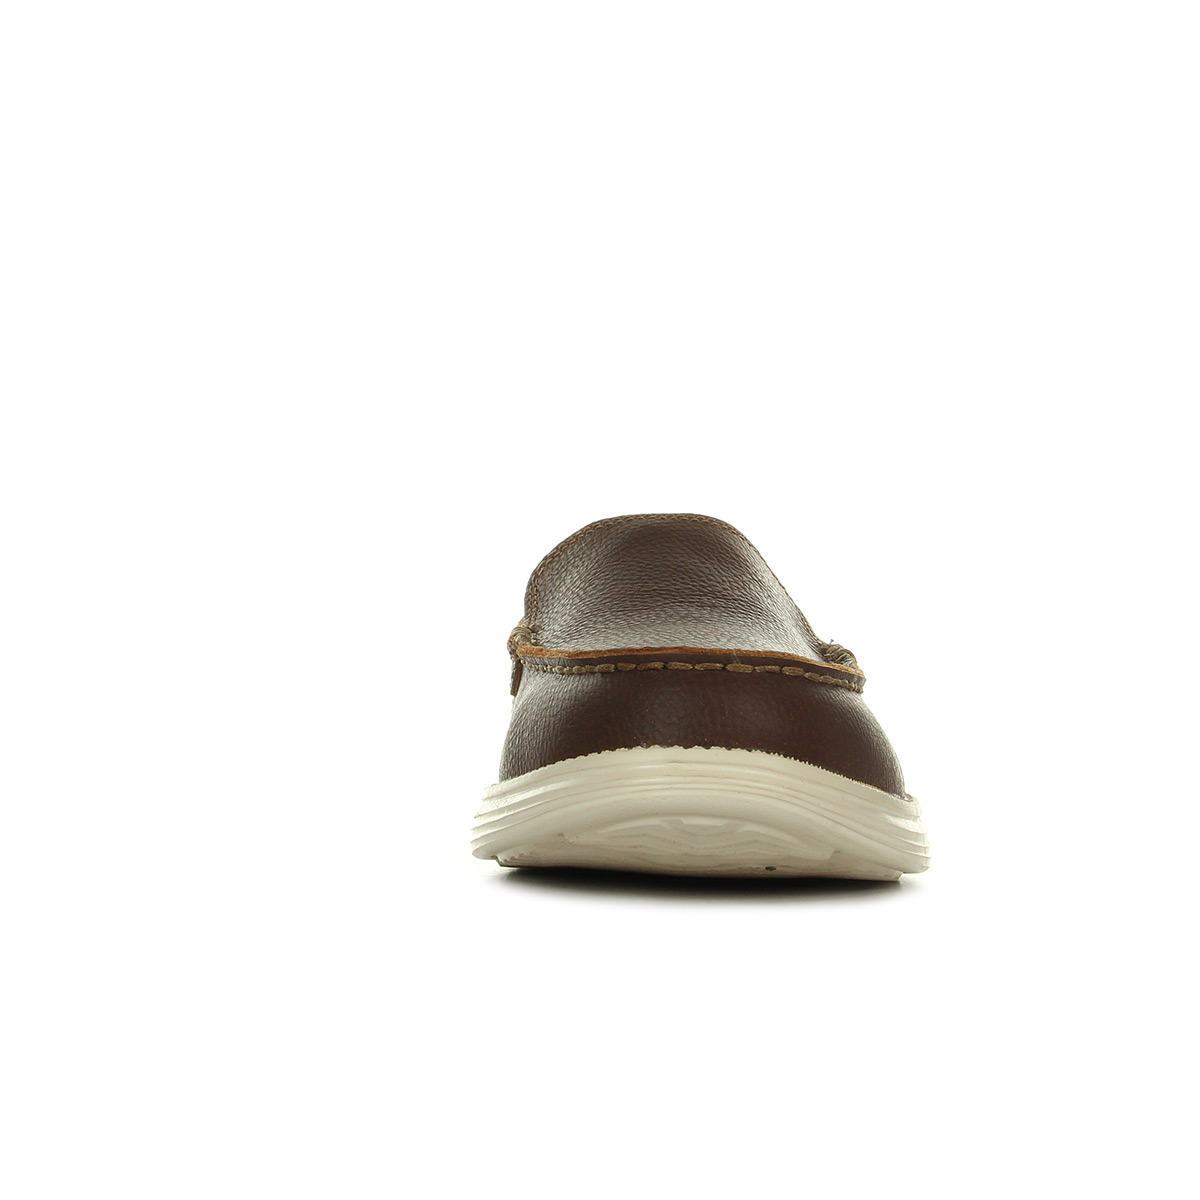 Skechers Bresson Brown 65505BRN, Mocassins homme